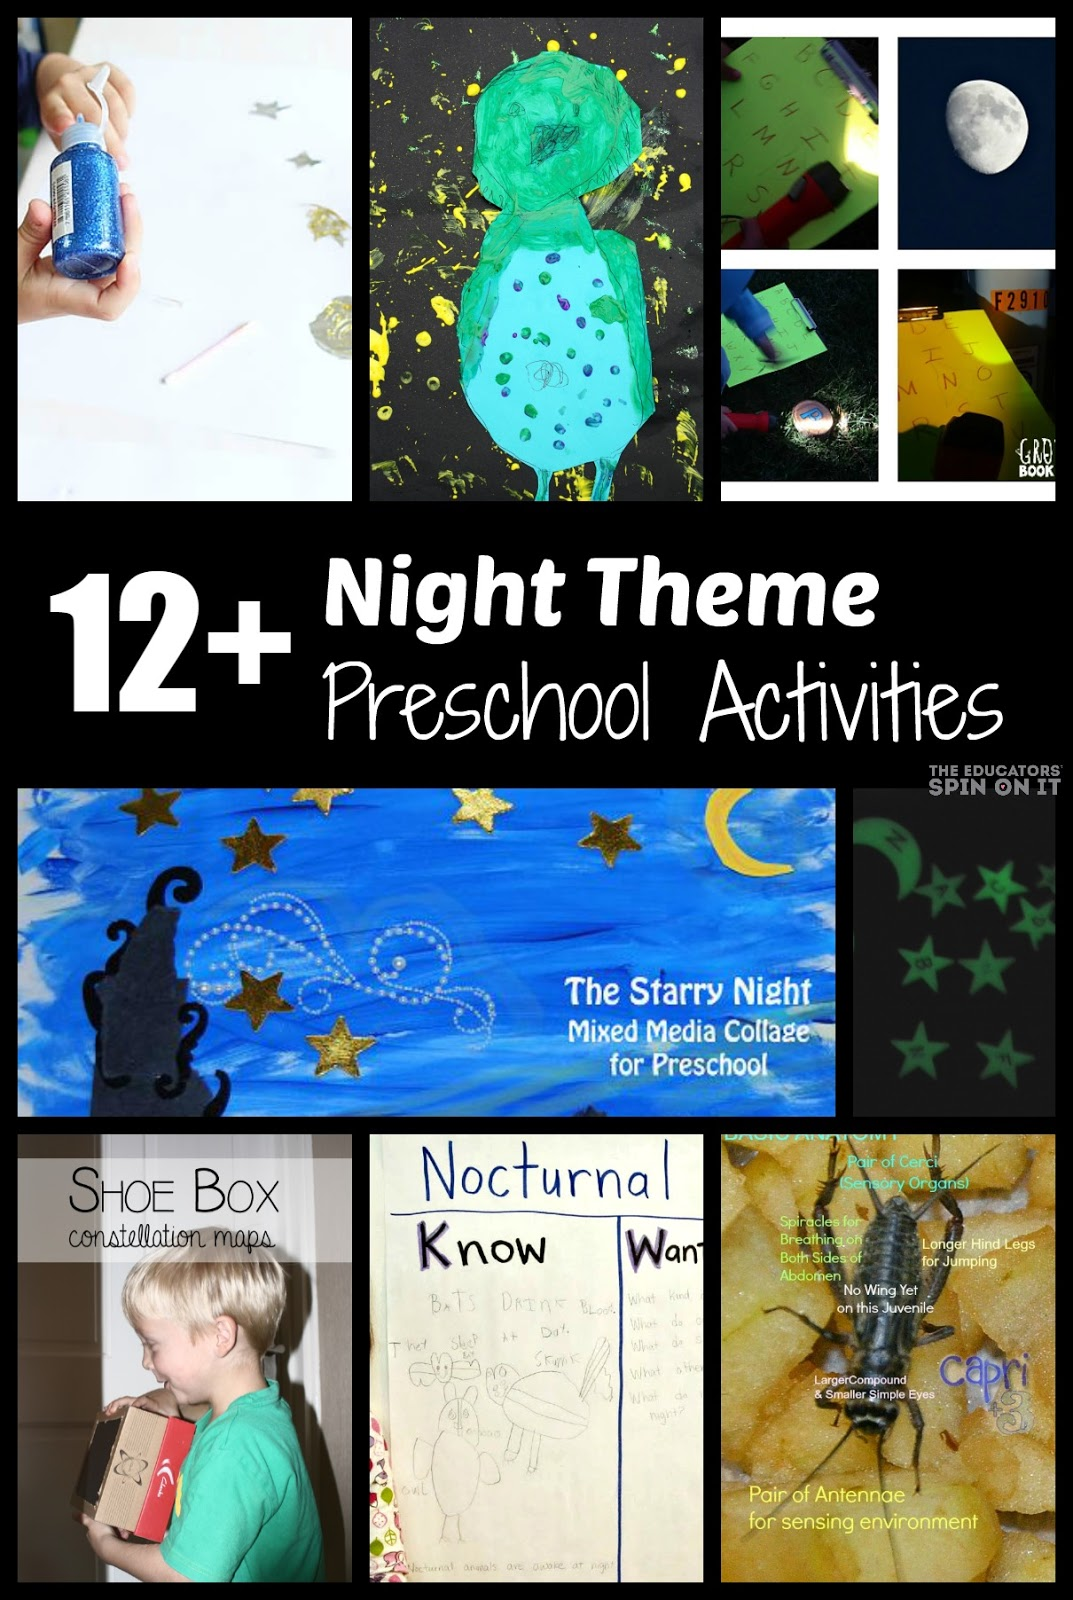 Preschool Activities for Night Theme: Bat Sonar Game, Glow in the Dark Sensory Bin, Starry Night Mixed Media Collage, Owl Painting, Nocturnal Animal KWL chart, Shoe Box Constellation Activity and MORE!